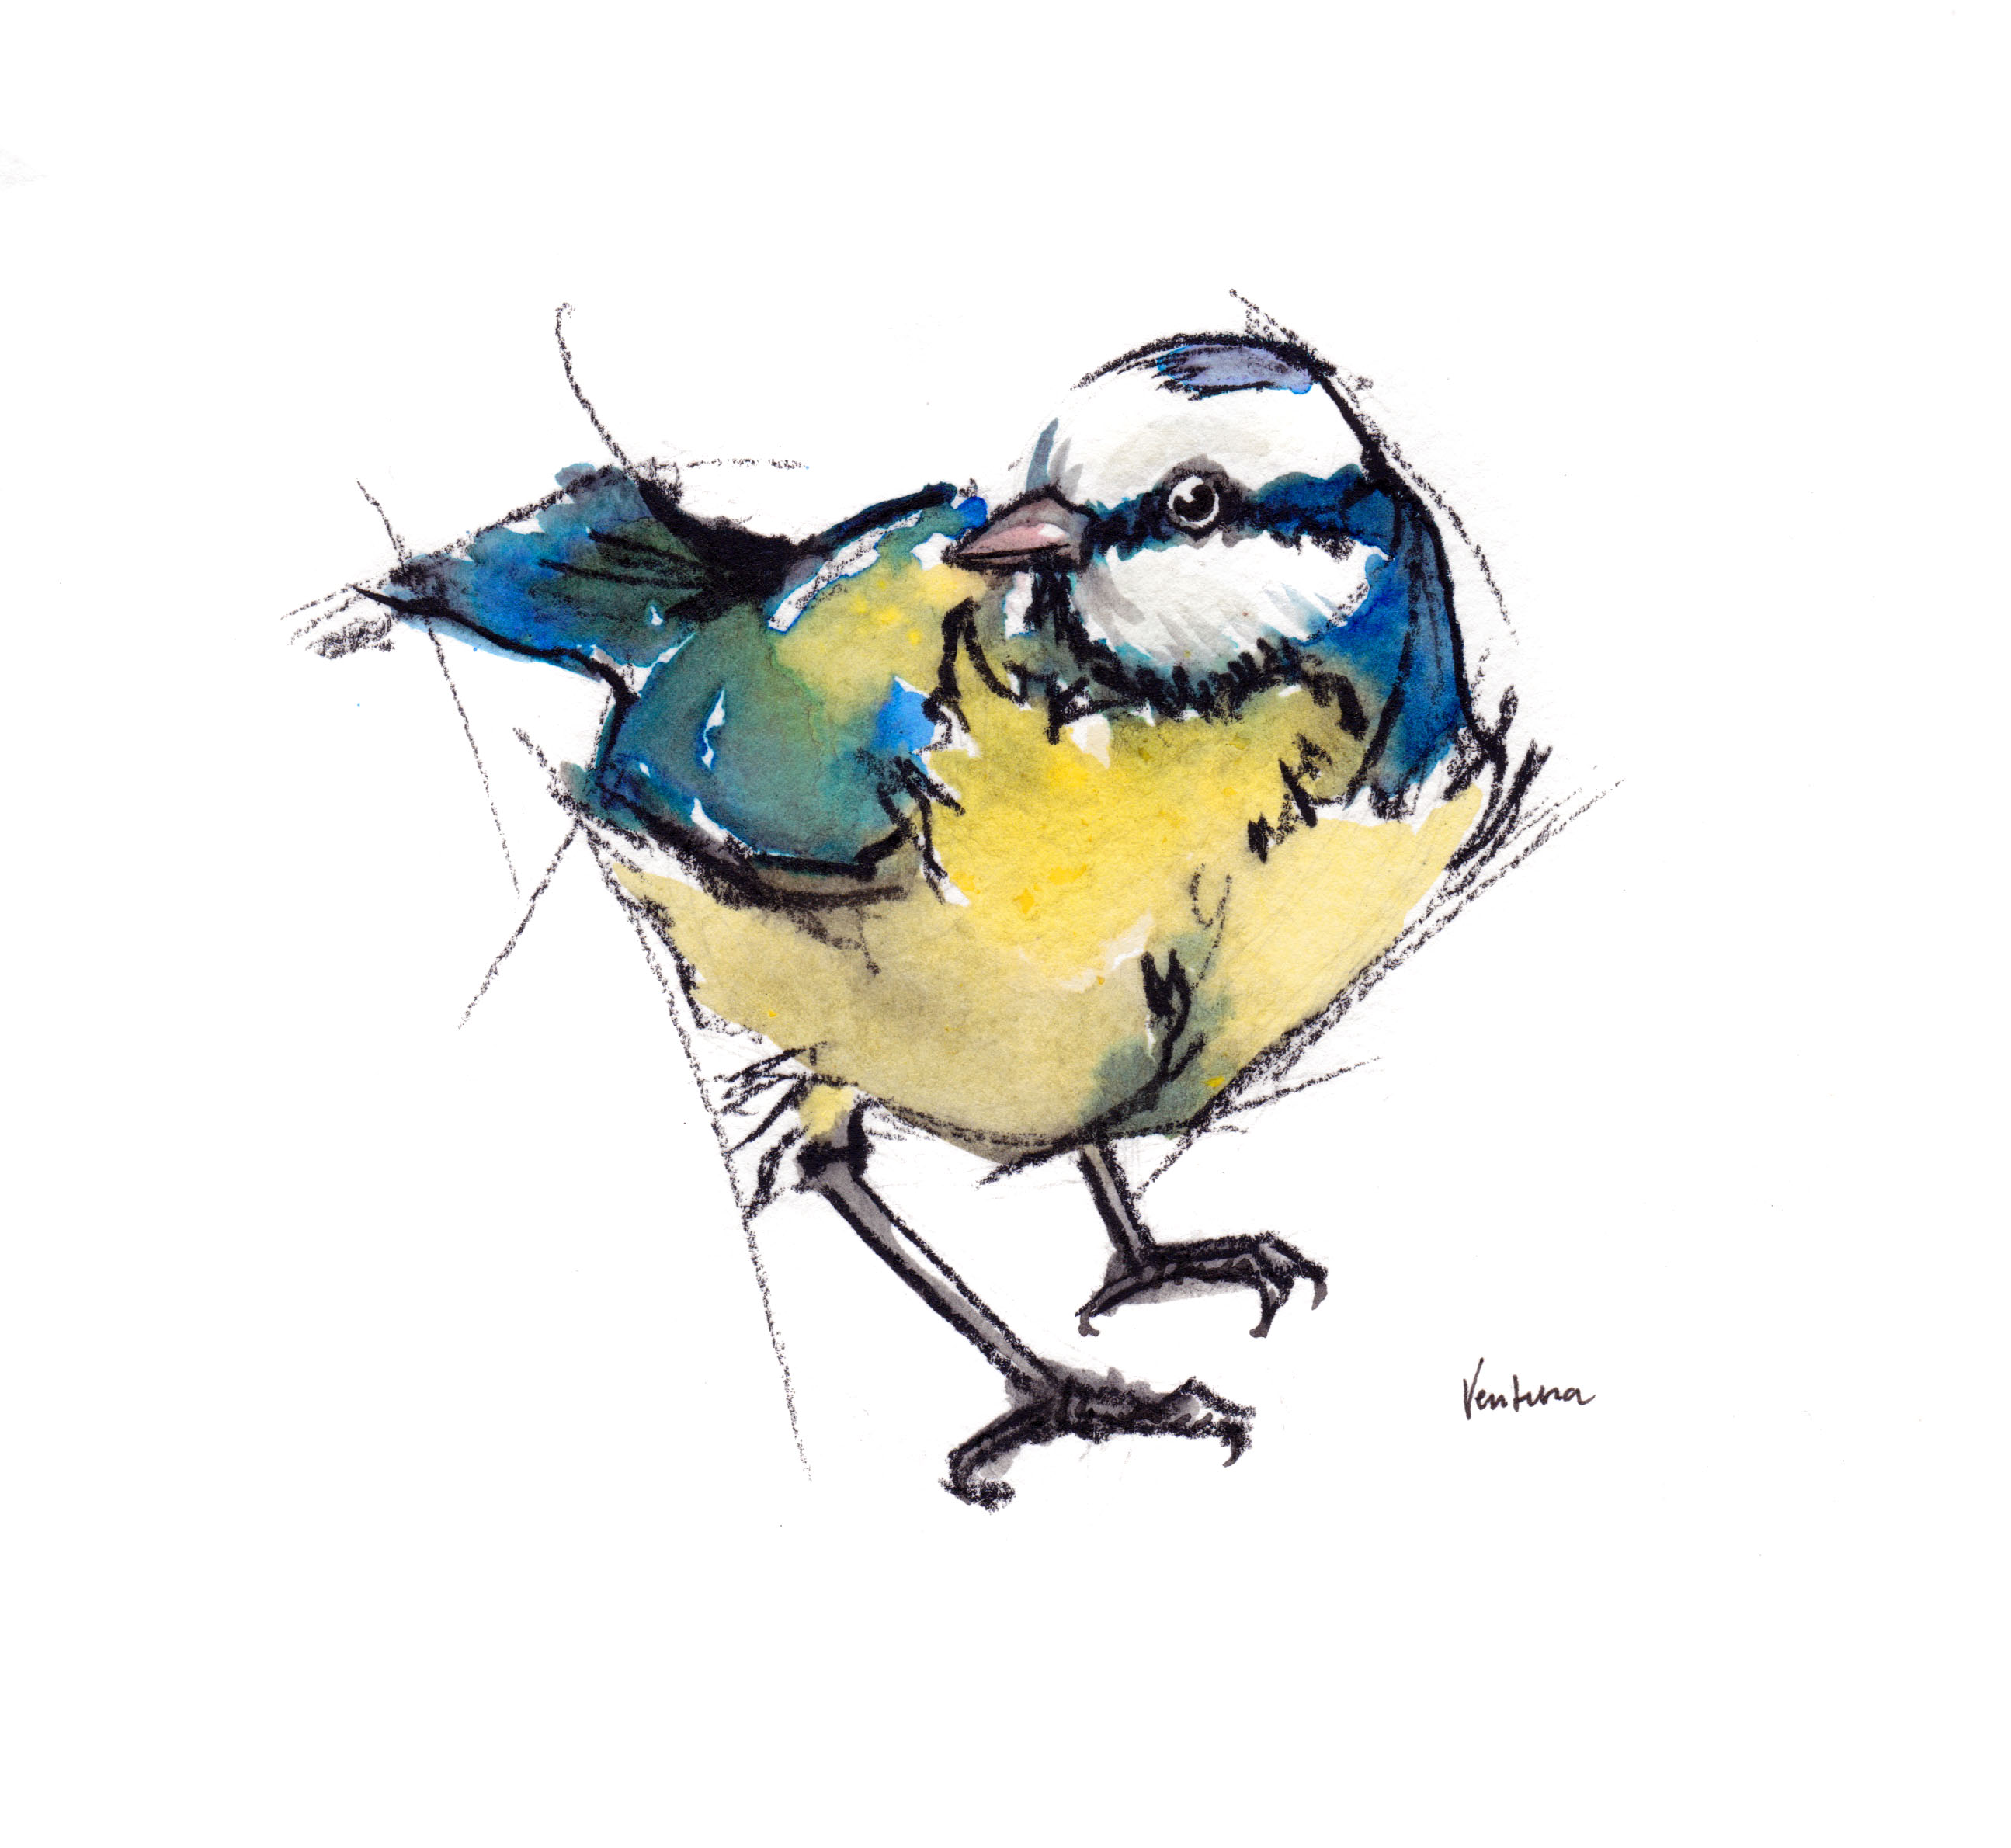 blue tit, bird, illustration, original, print, cards, charcoal,